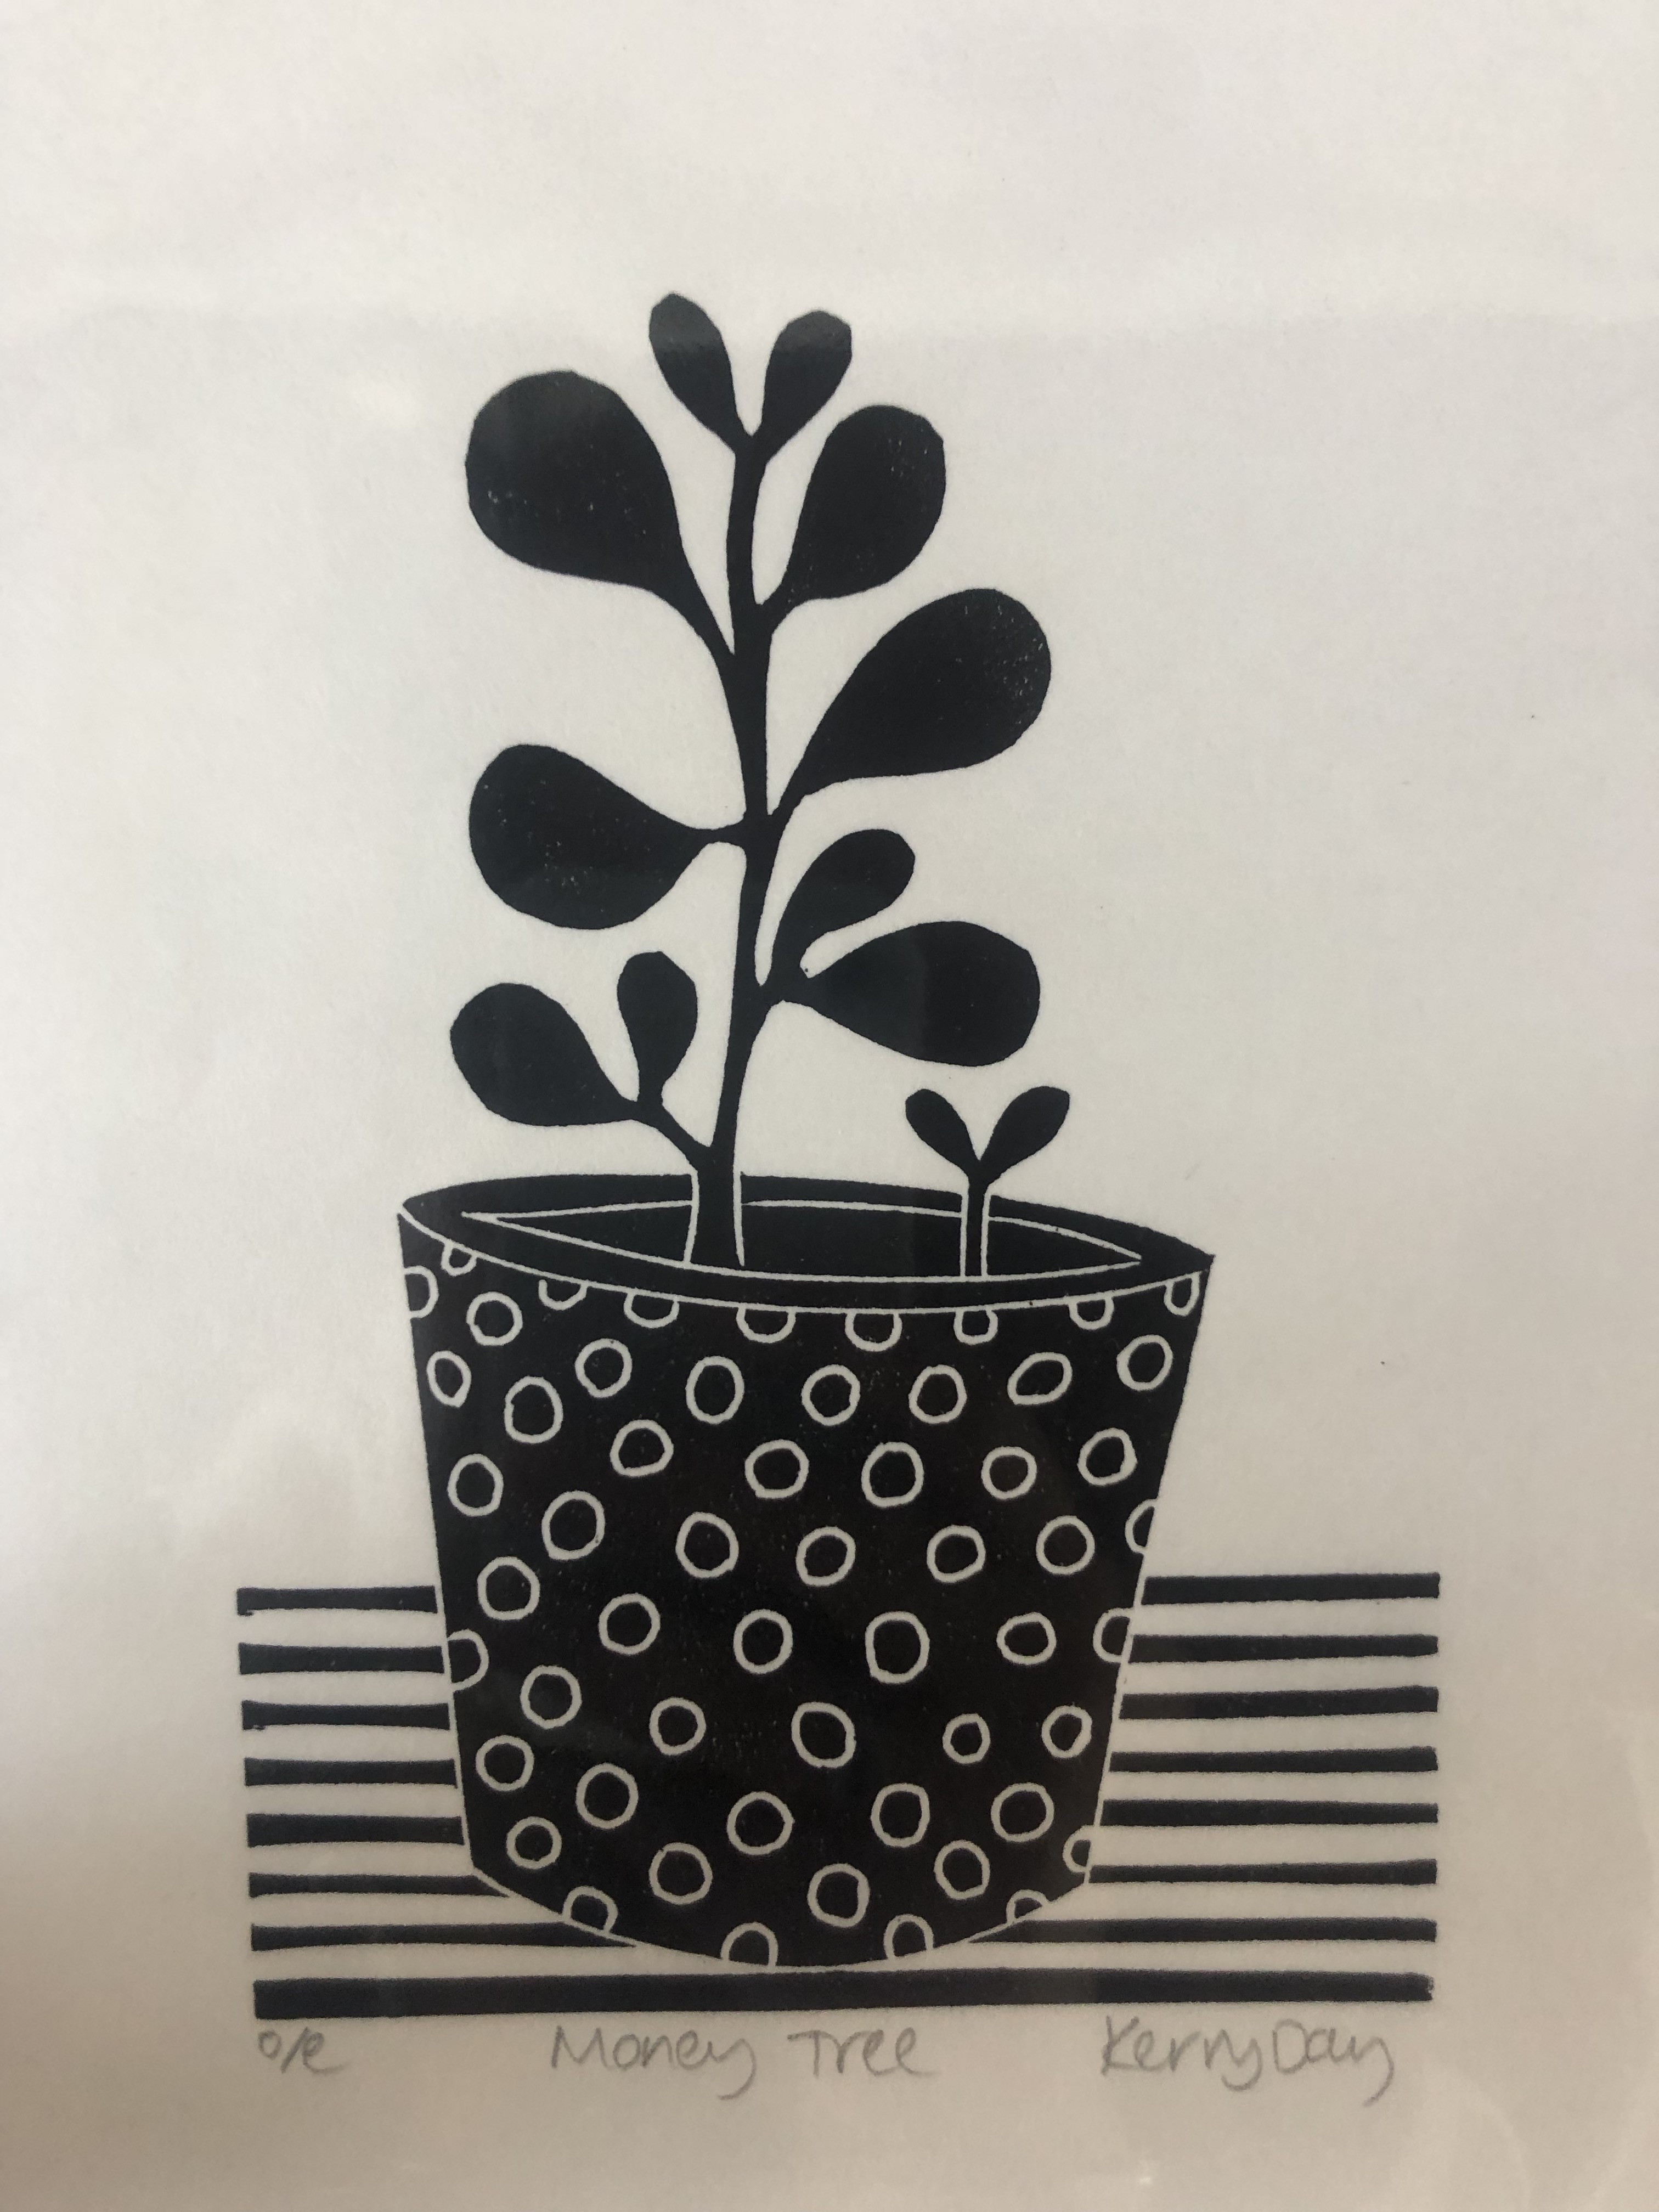 Money Tree is an open edition linocut print by Kerry Day.